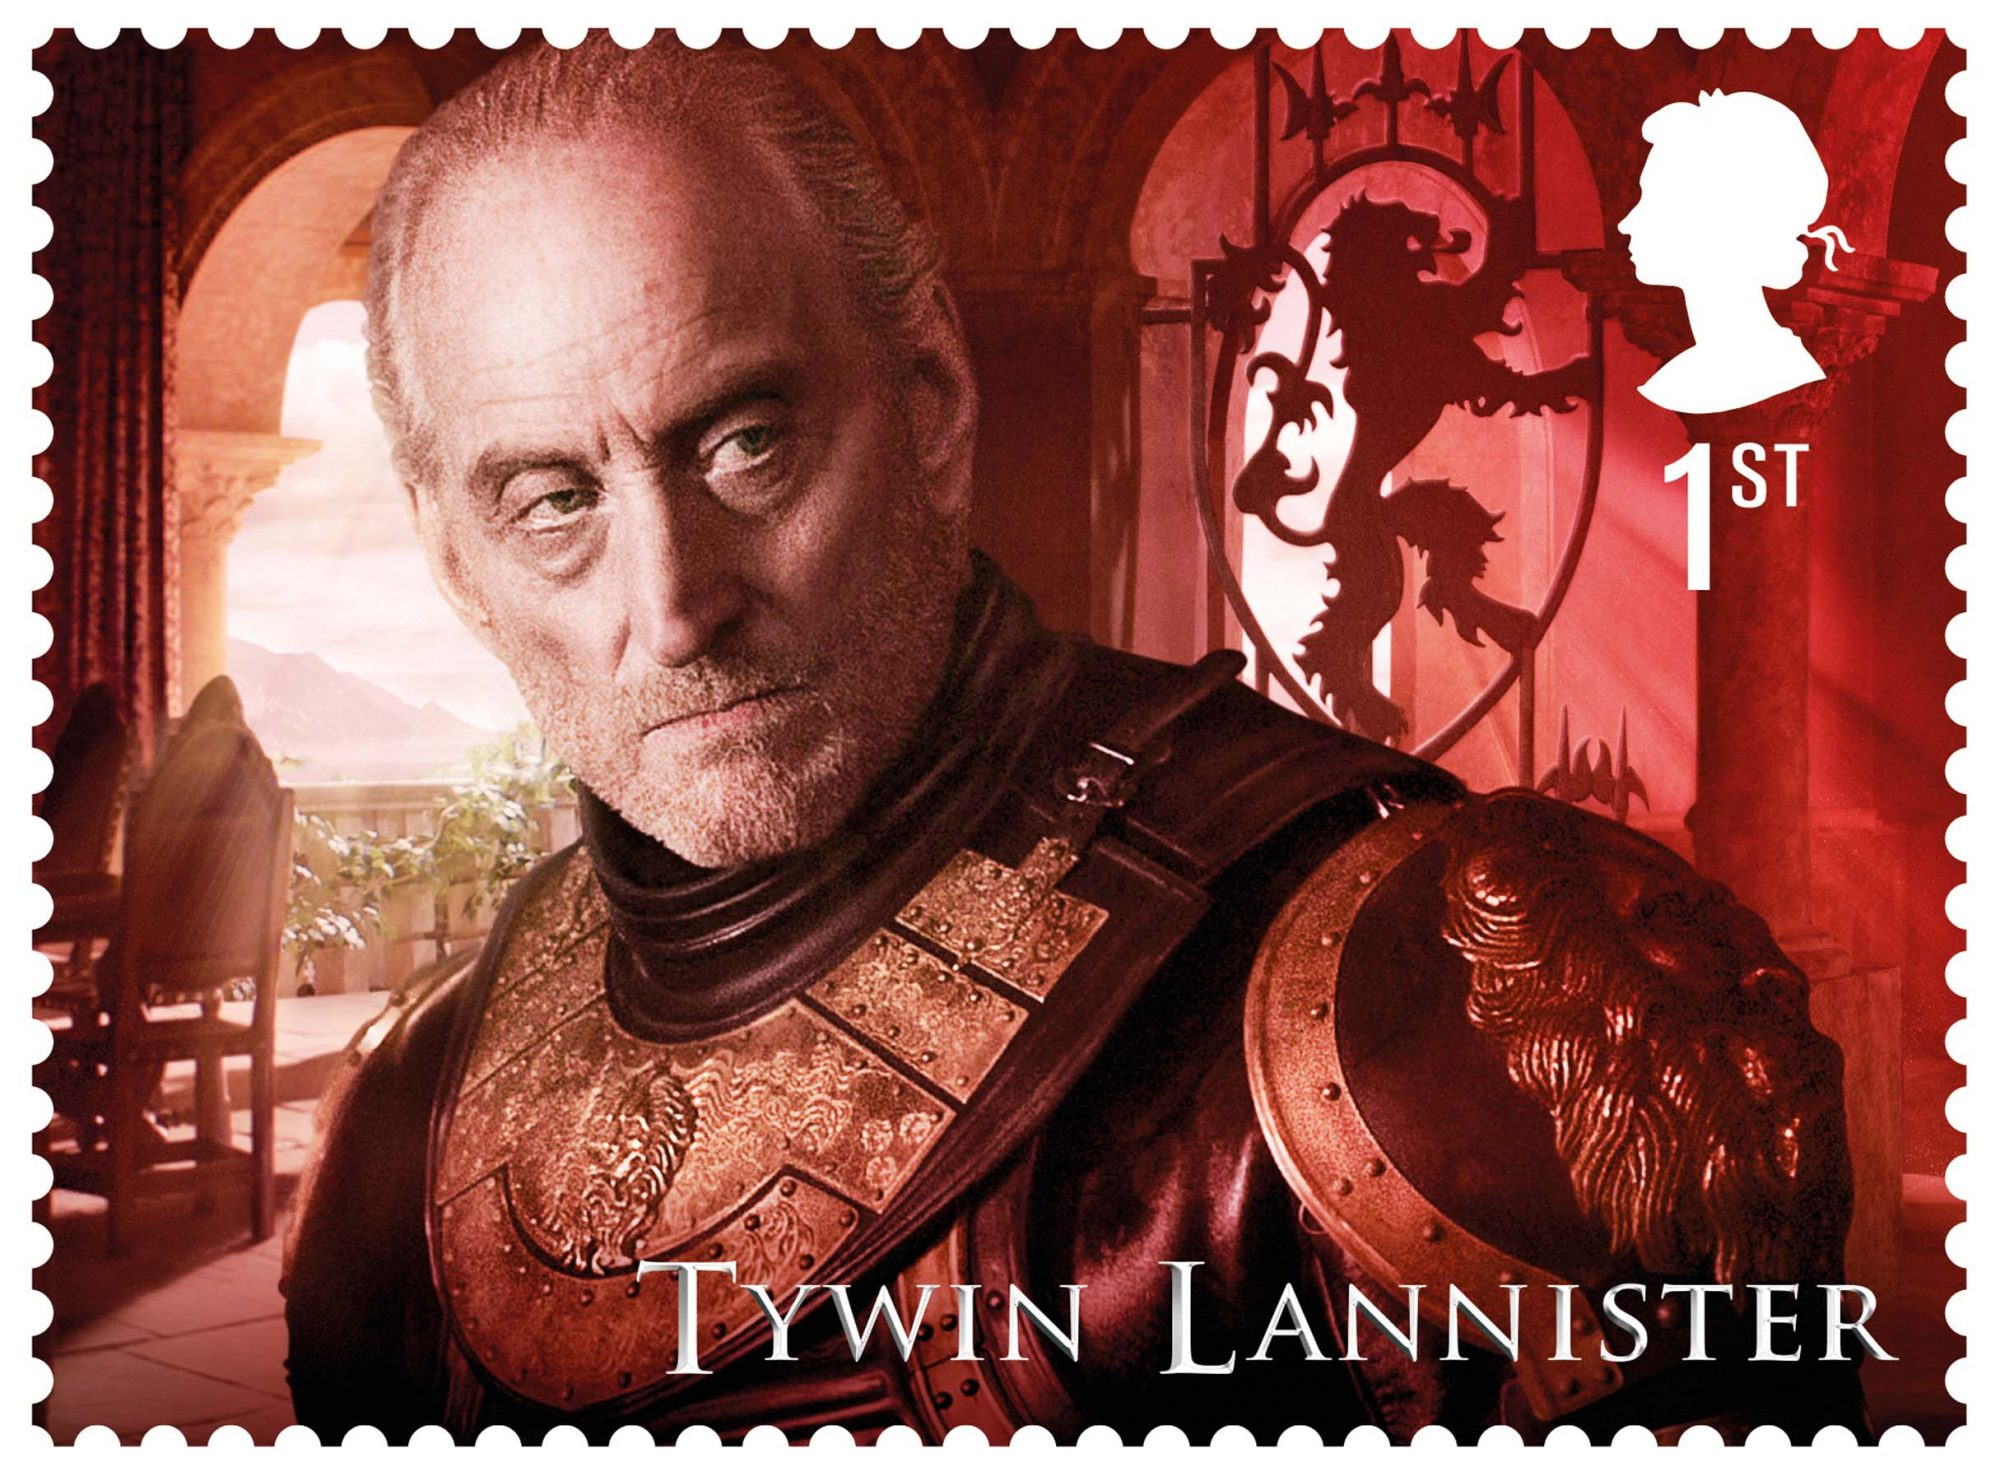 GoT Tywin Lannister stamp